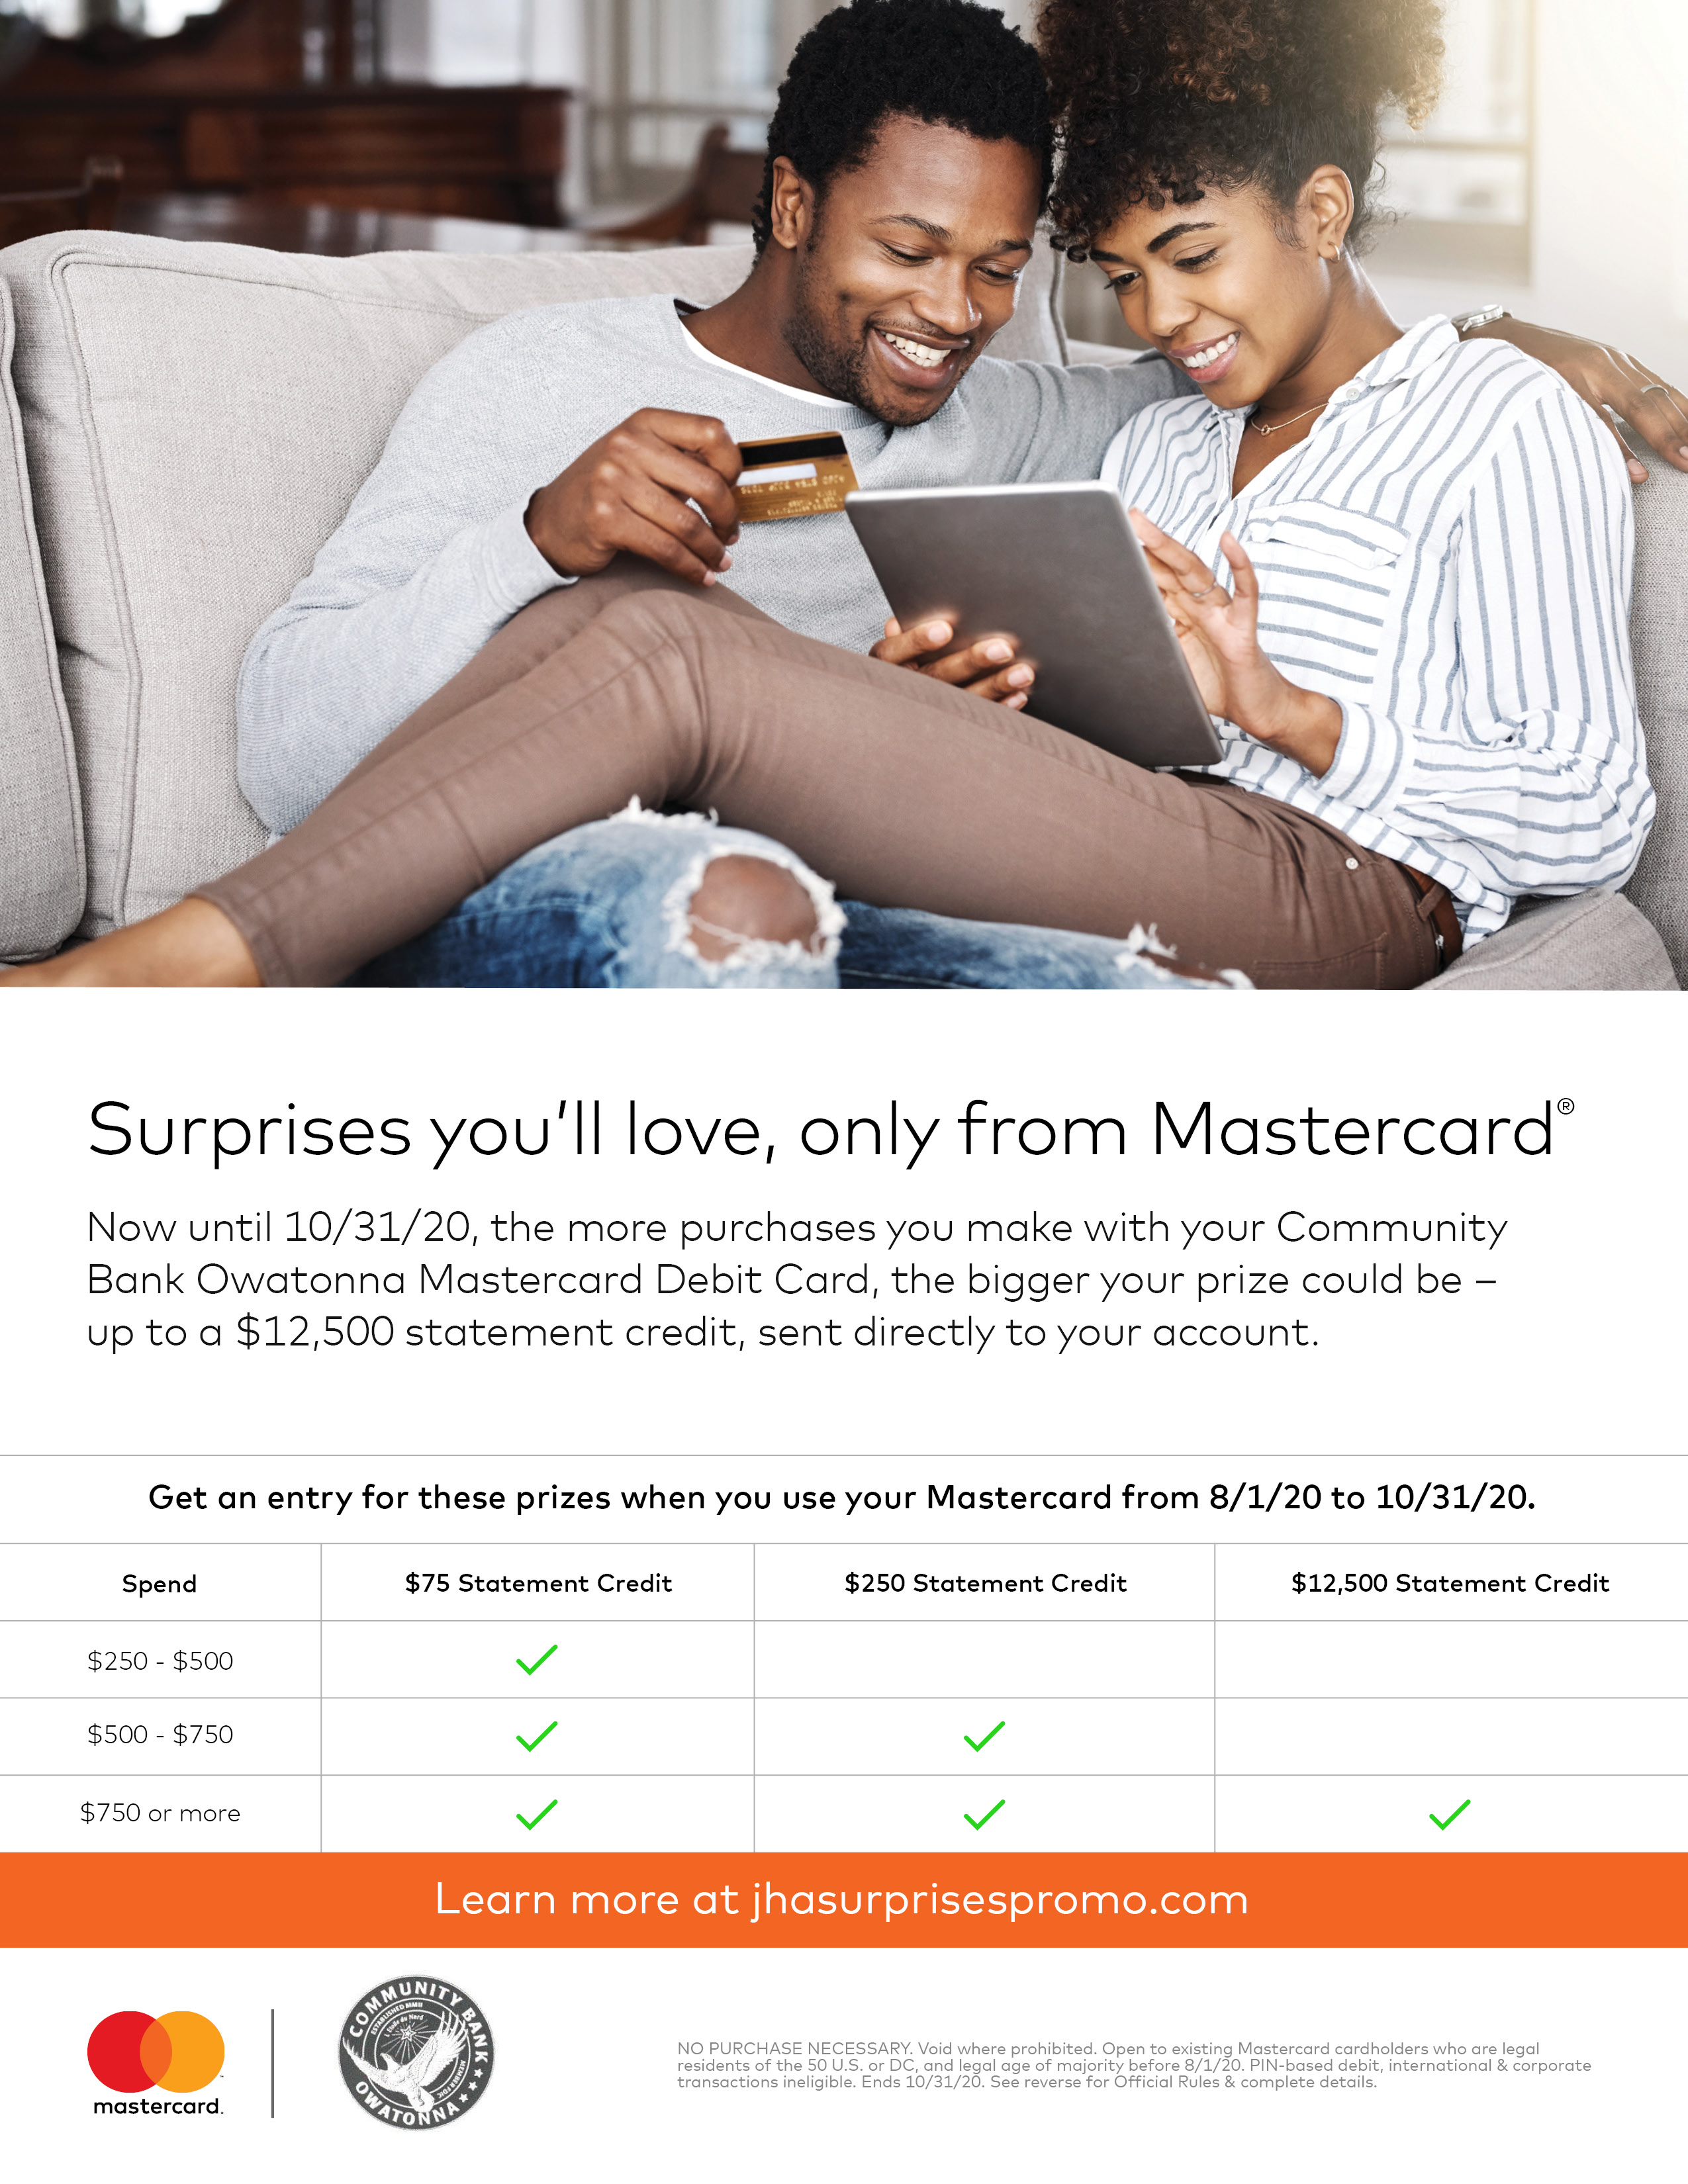 Surprises you'll love, only from Mastercard.  Get an entry for these prizes when you use your CBO Mastercard Debit Card from 8/1/20 to 10/31/20.  Learn more at jhasurprisespromo.com.